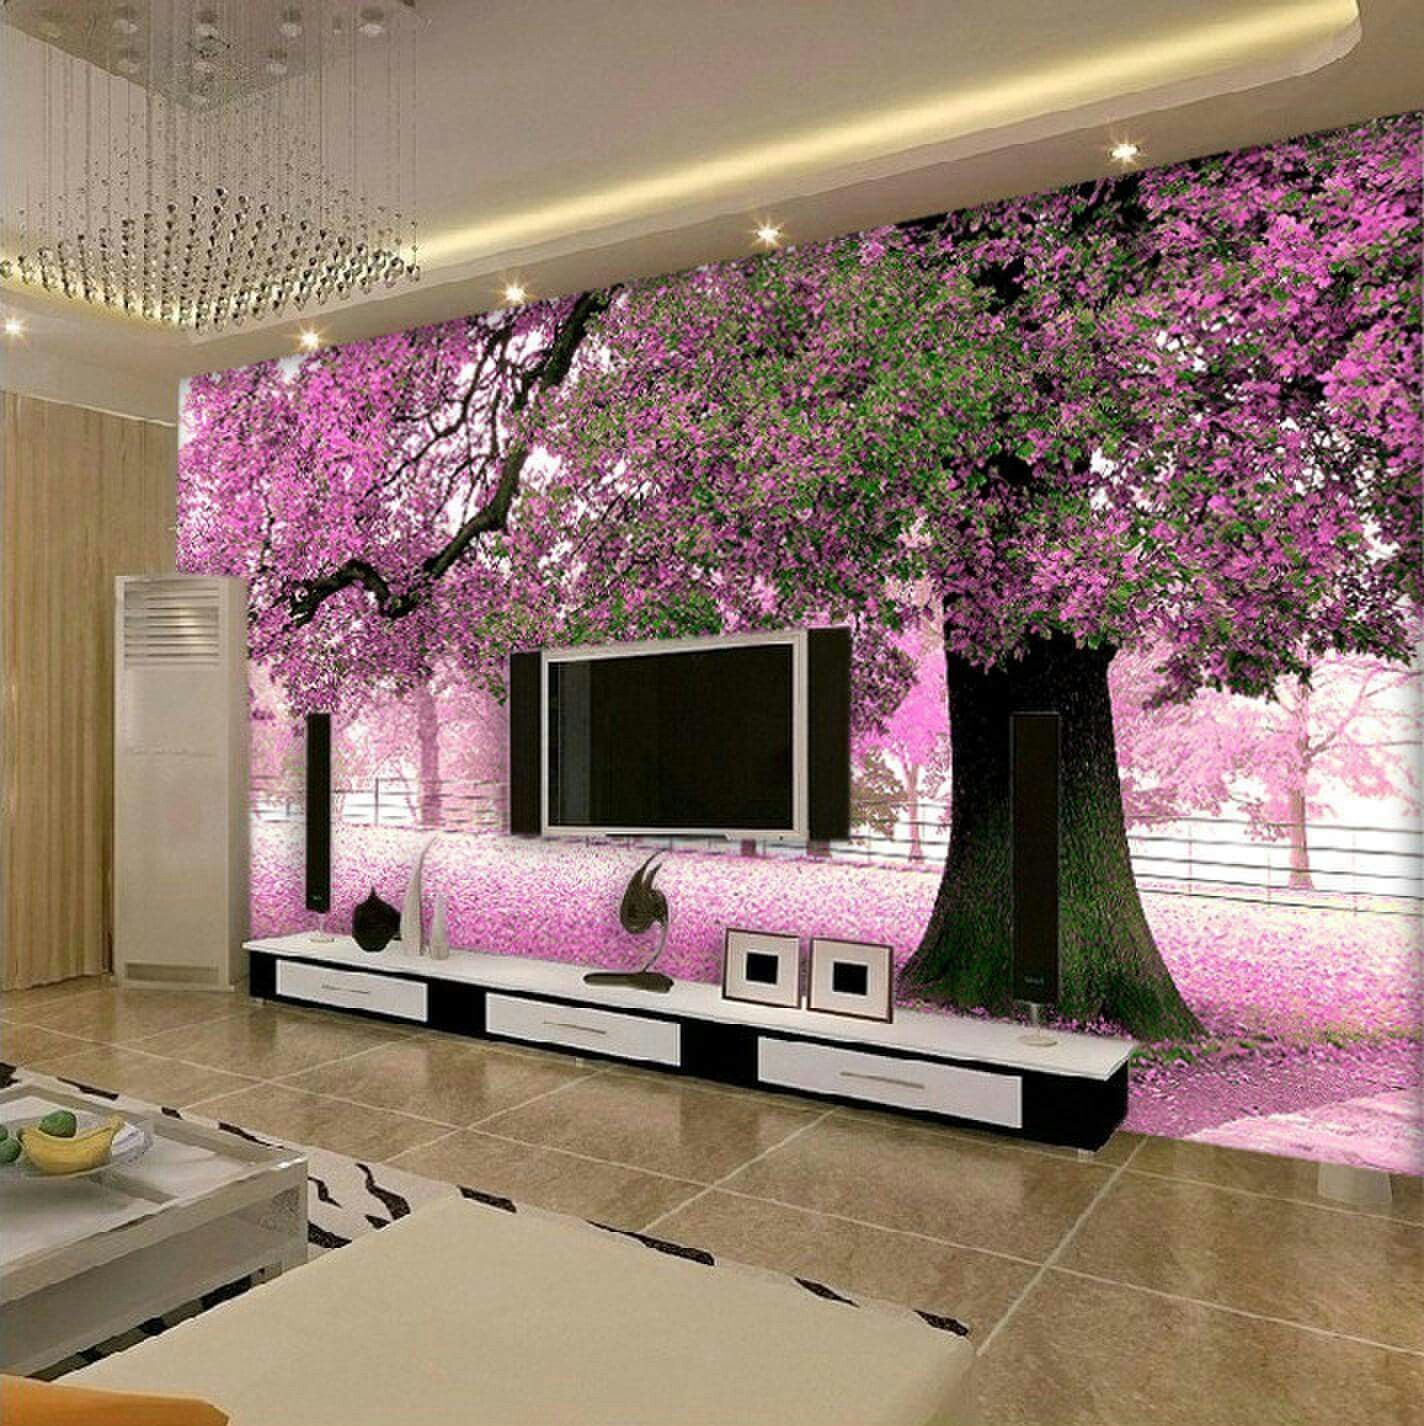 Idea By Arzu Tokay On 7 Dekor Objeler Wall Decals Living Room